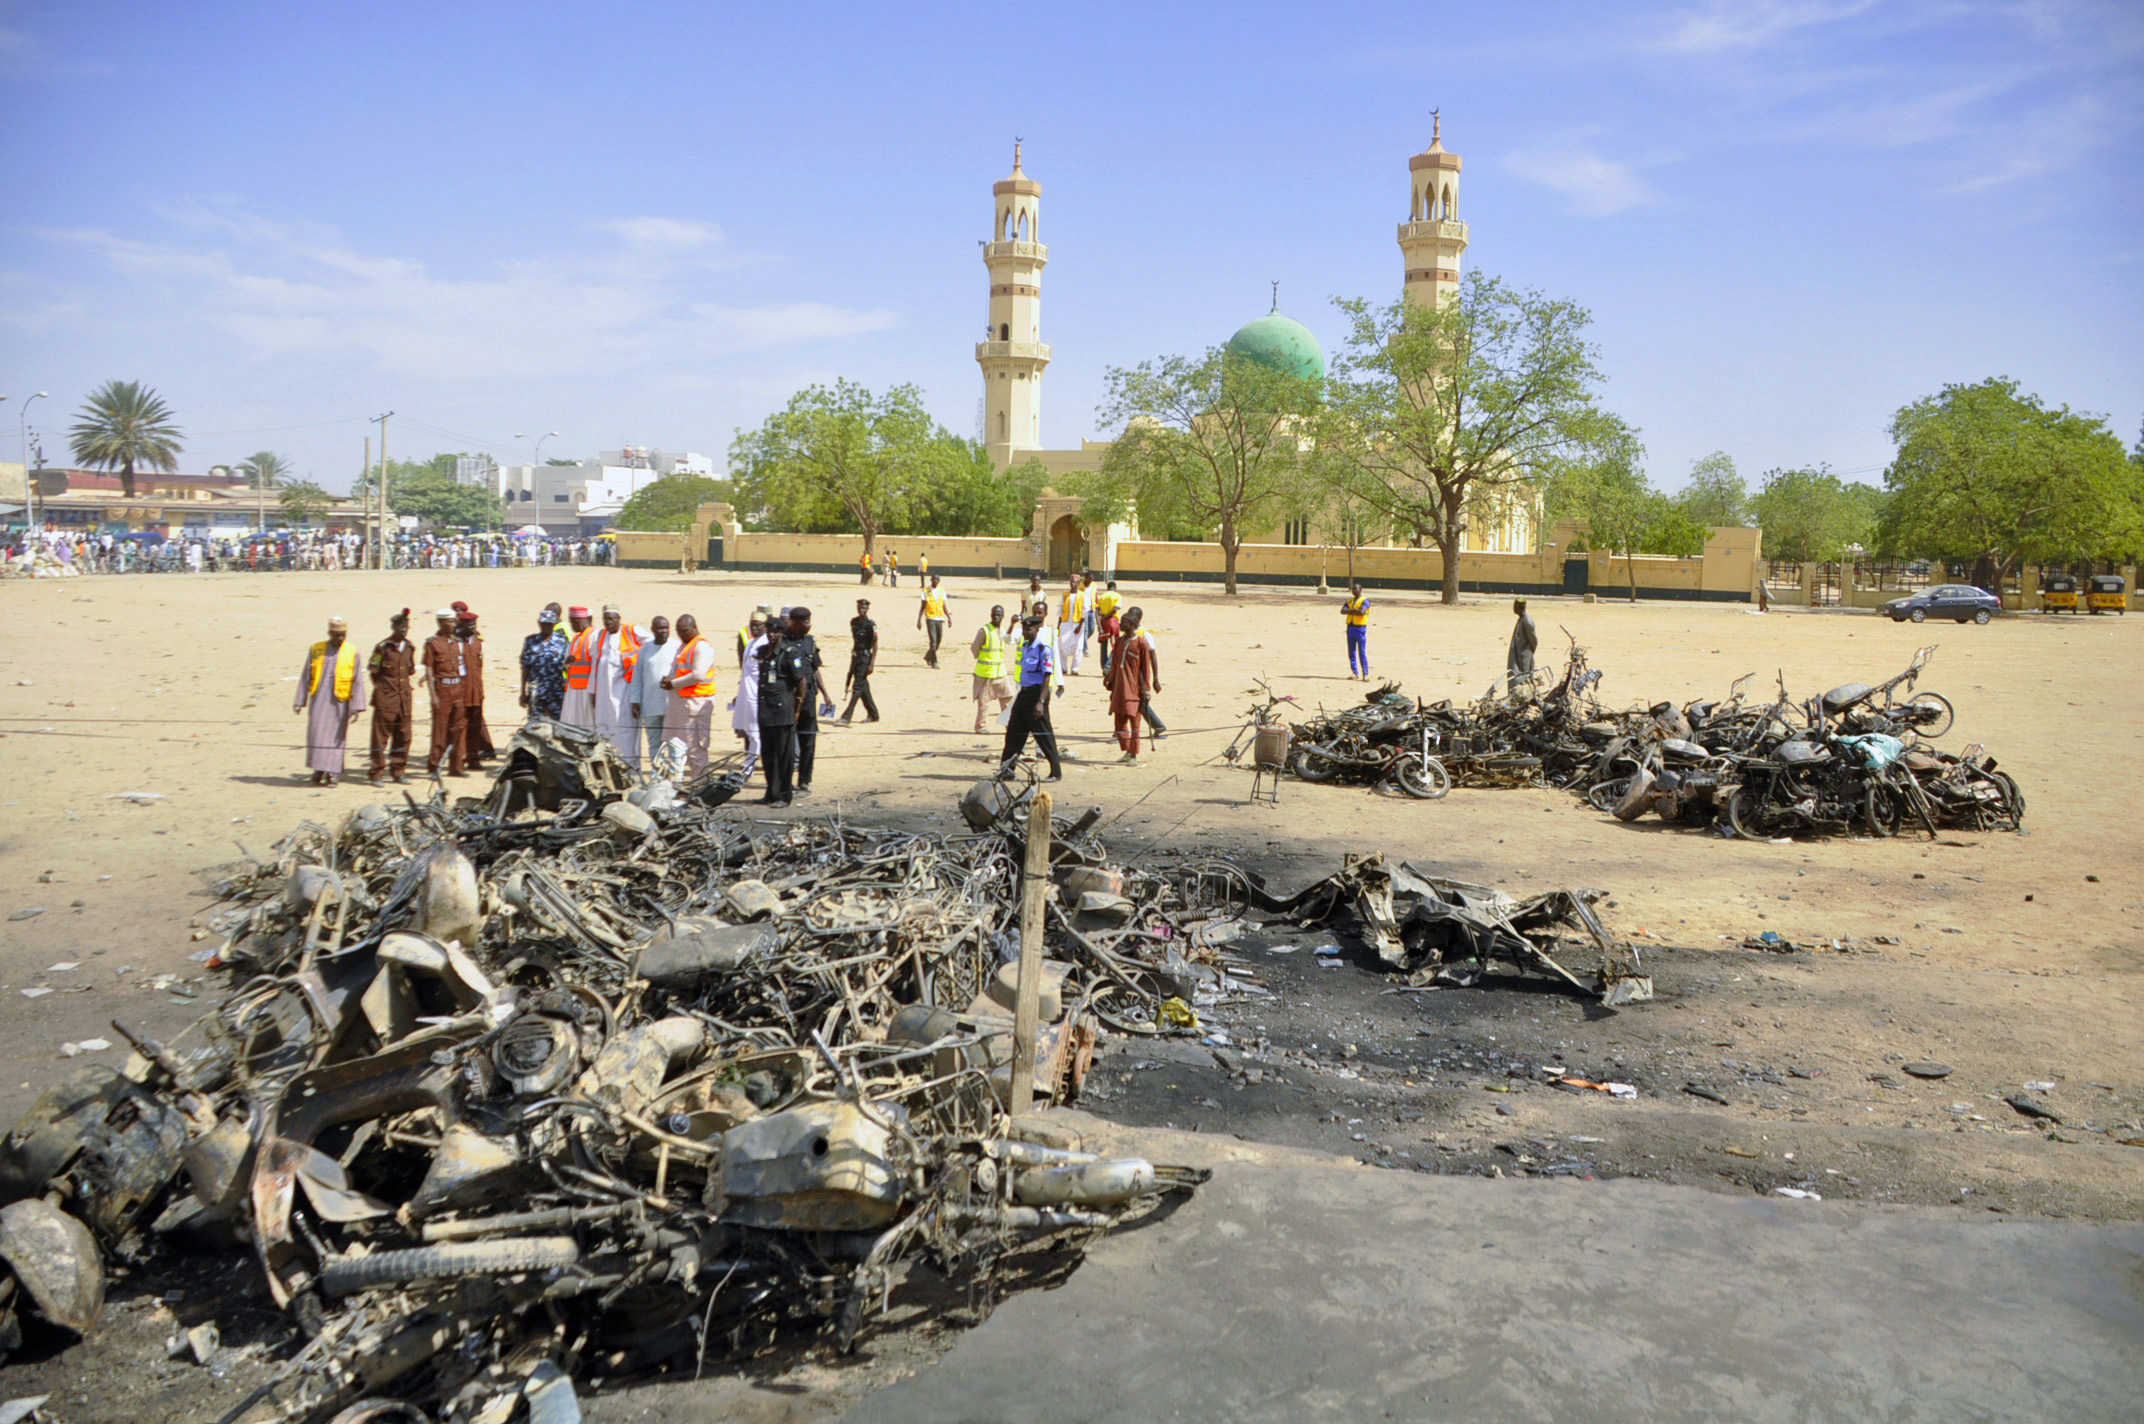 Police and emergency workers investigate a bombing scene in Kano, Nigeris, on November 29, 2014.